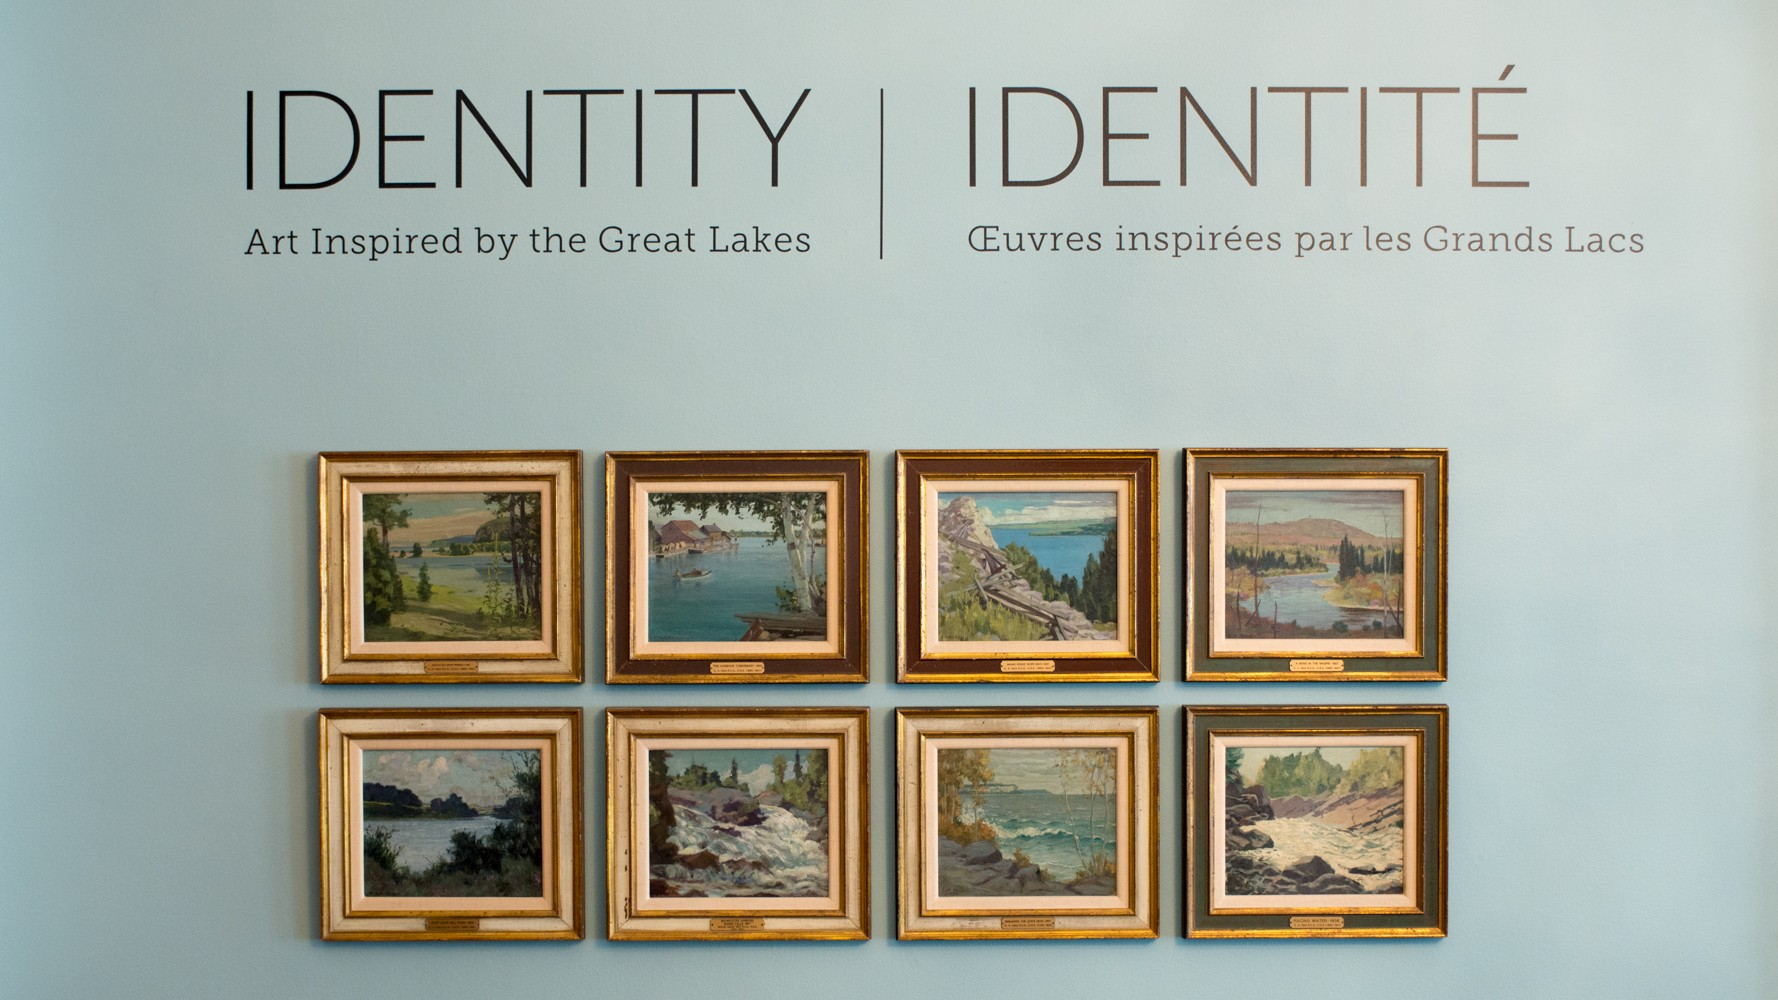 Identity: Art Inspired by the Great Lakes